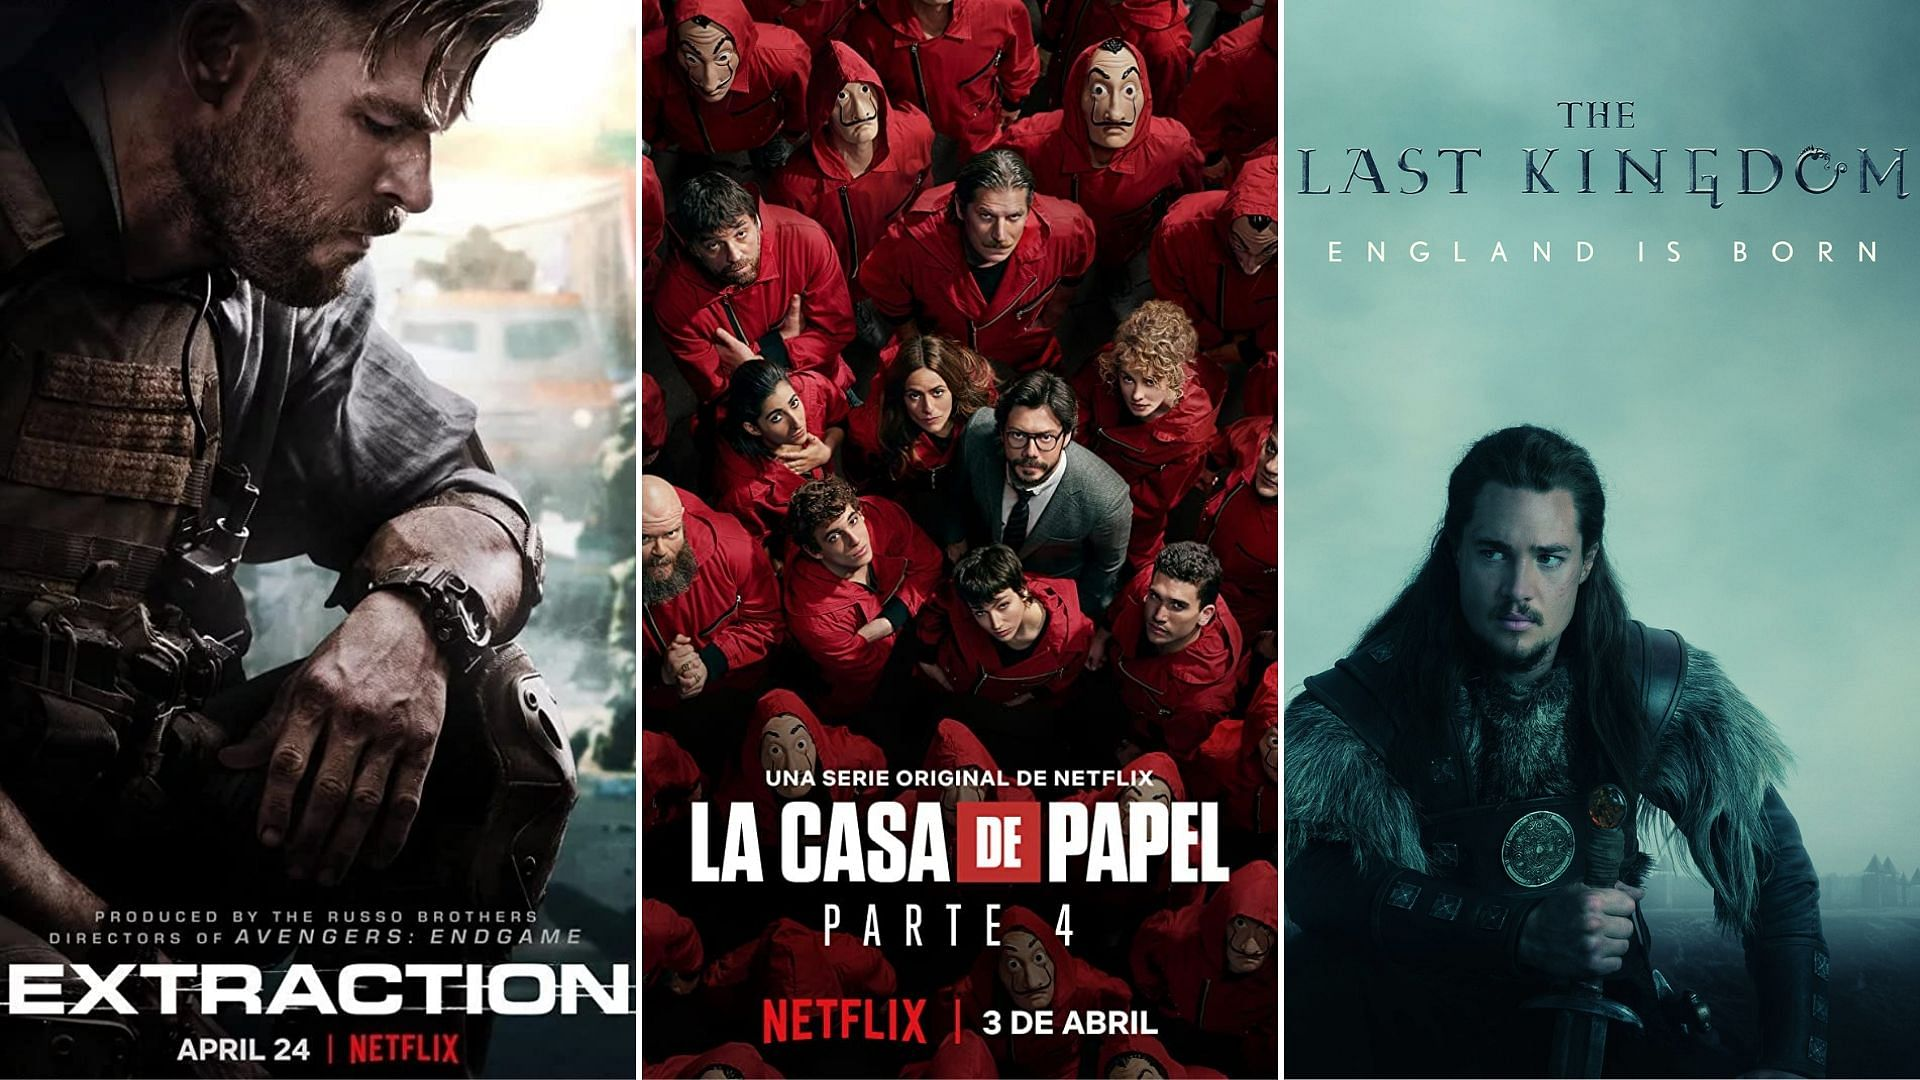 New Shows And Movies On Netflix April 2020 From Jesus Colmenar S Money Heist Part 4 To Sam Hargrave S Extractio Here S A Watch List Of Everything